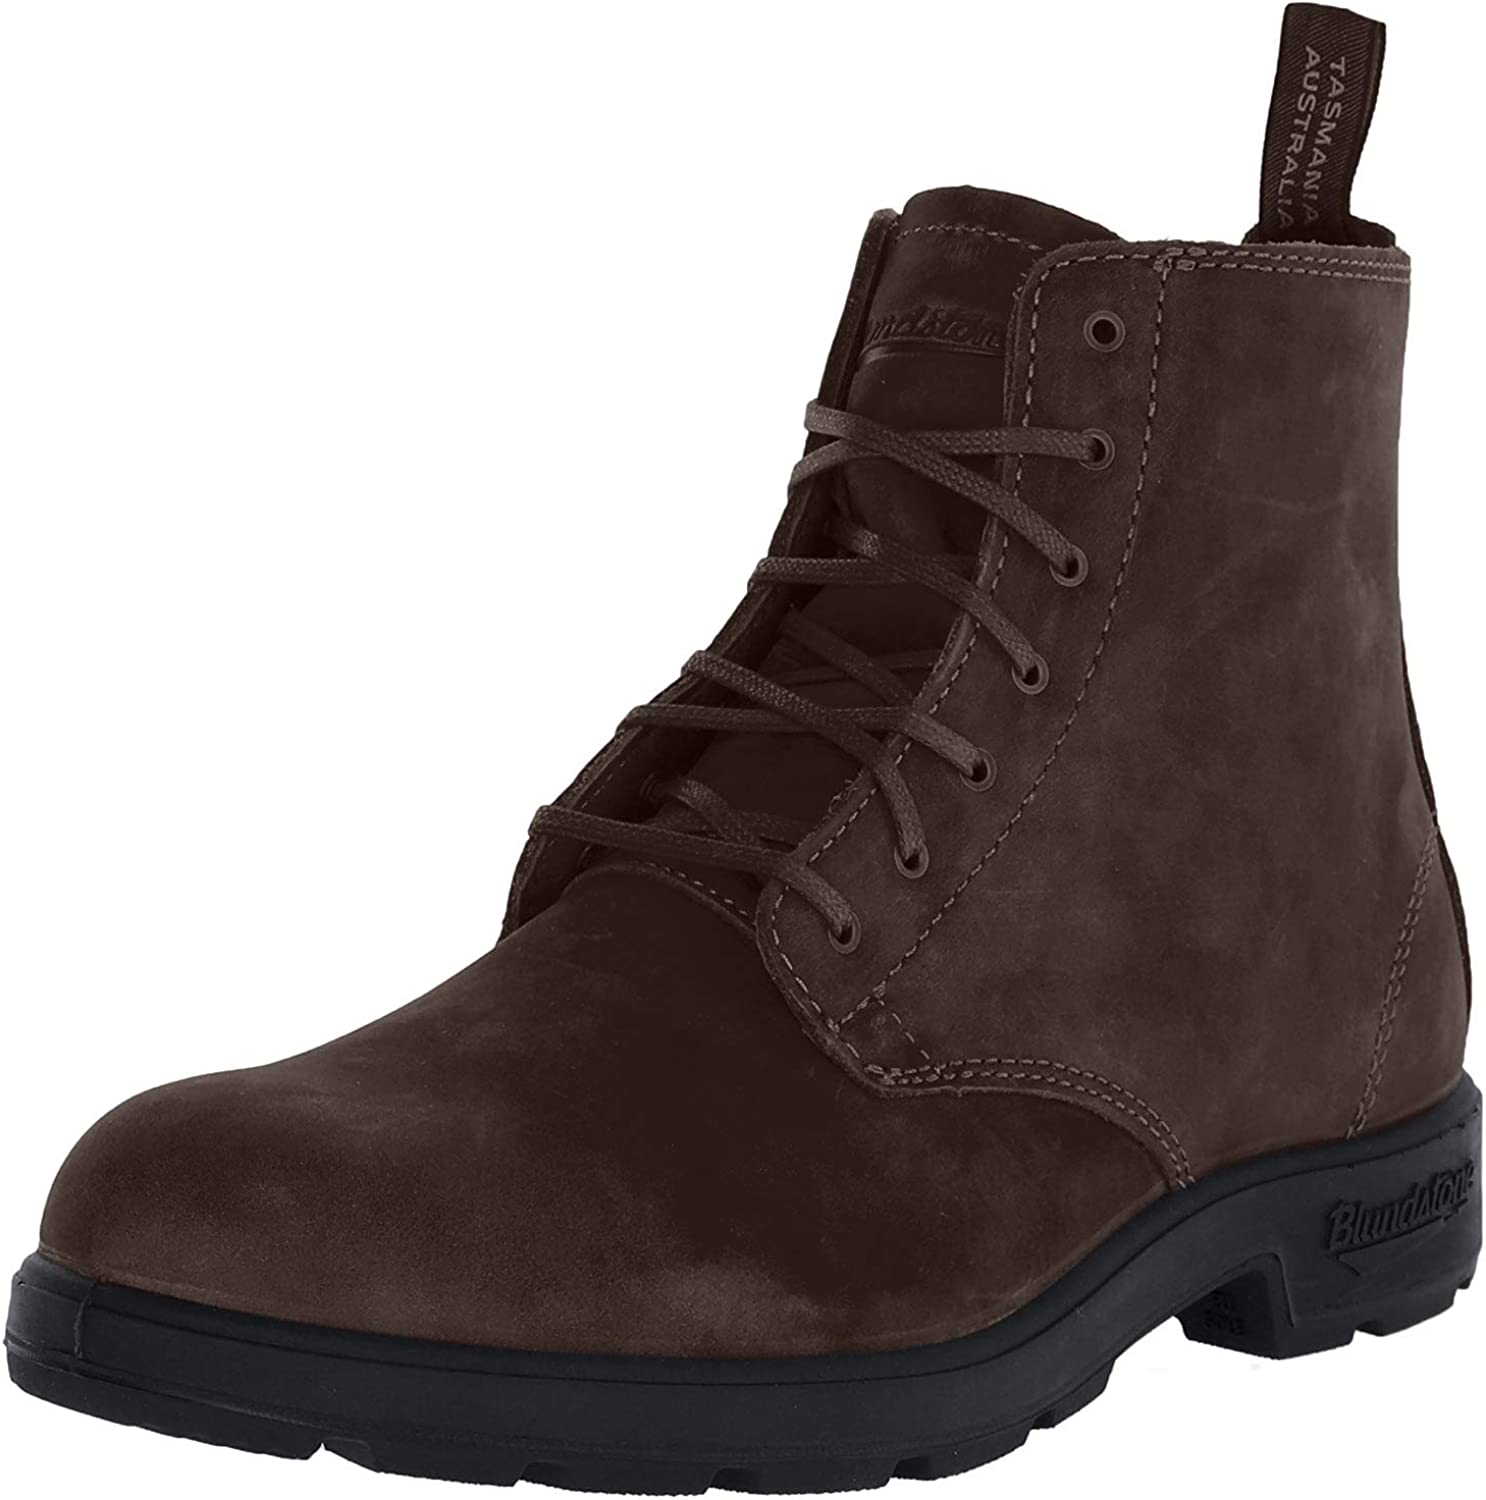 Leather Ankle Boots: Amazon.co.uk